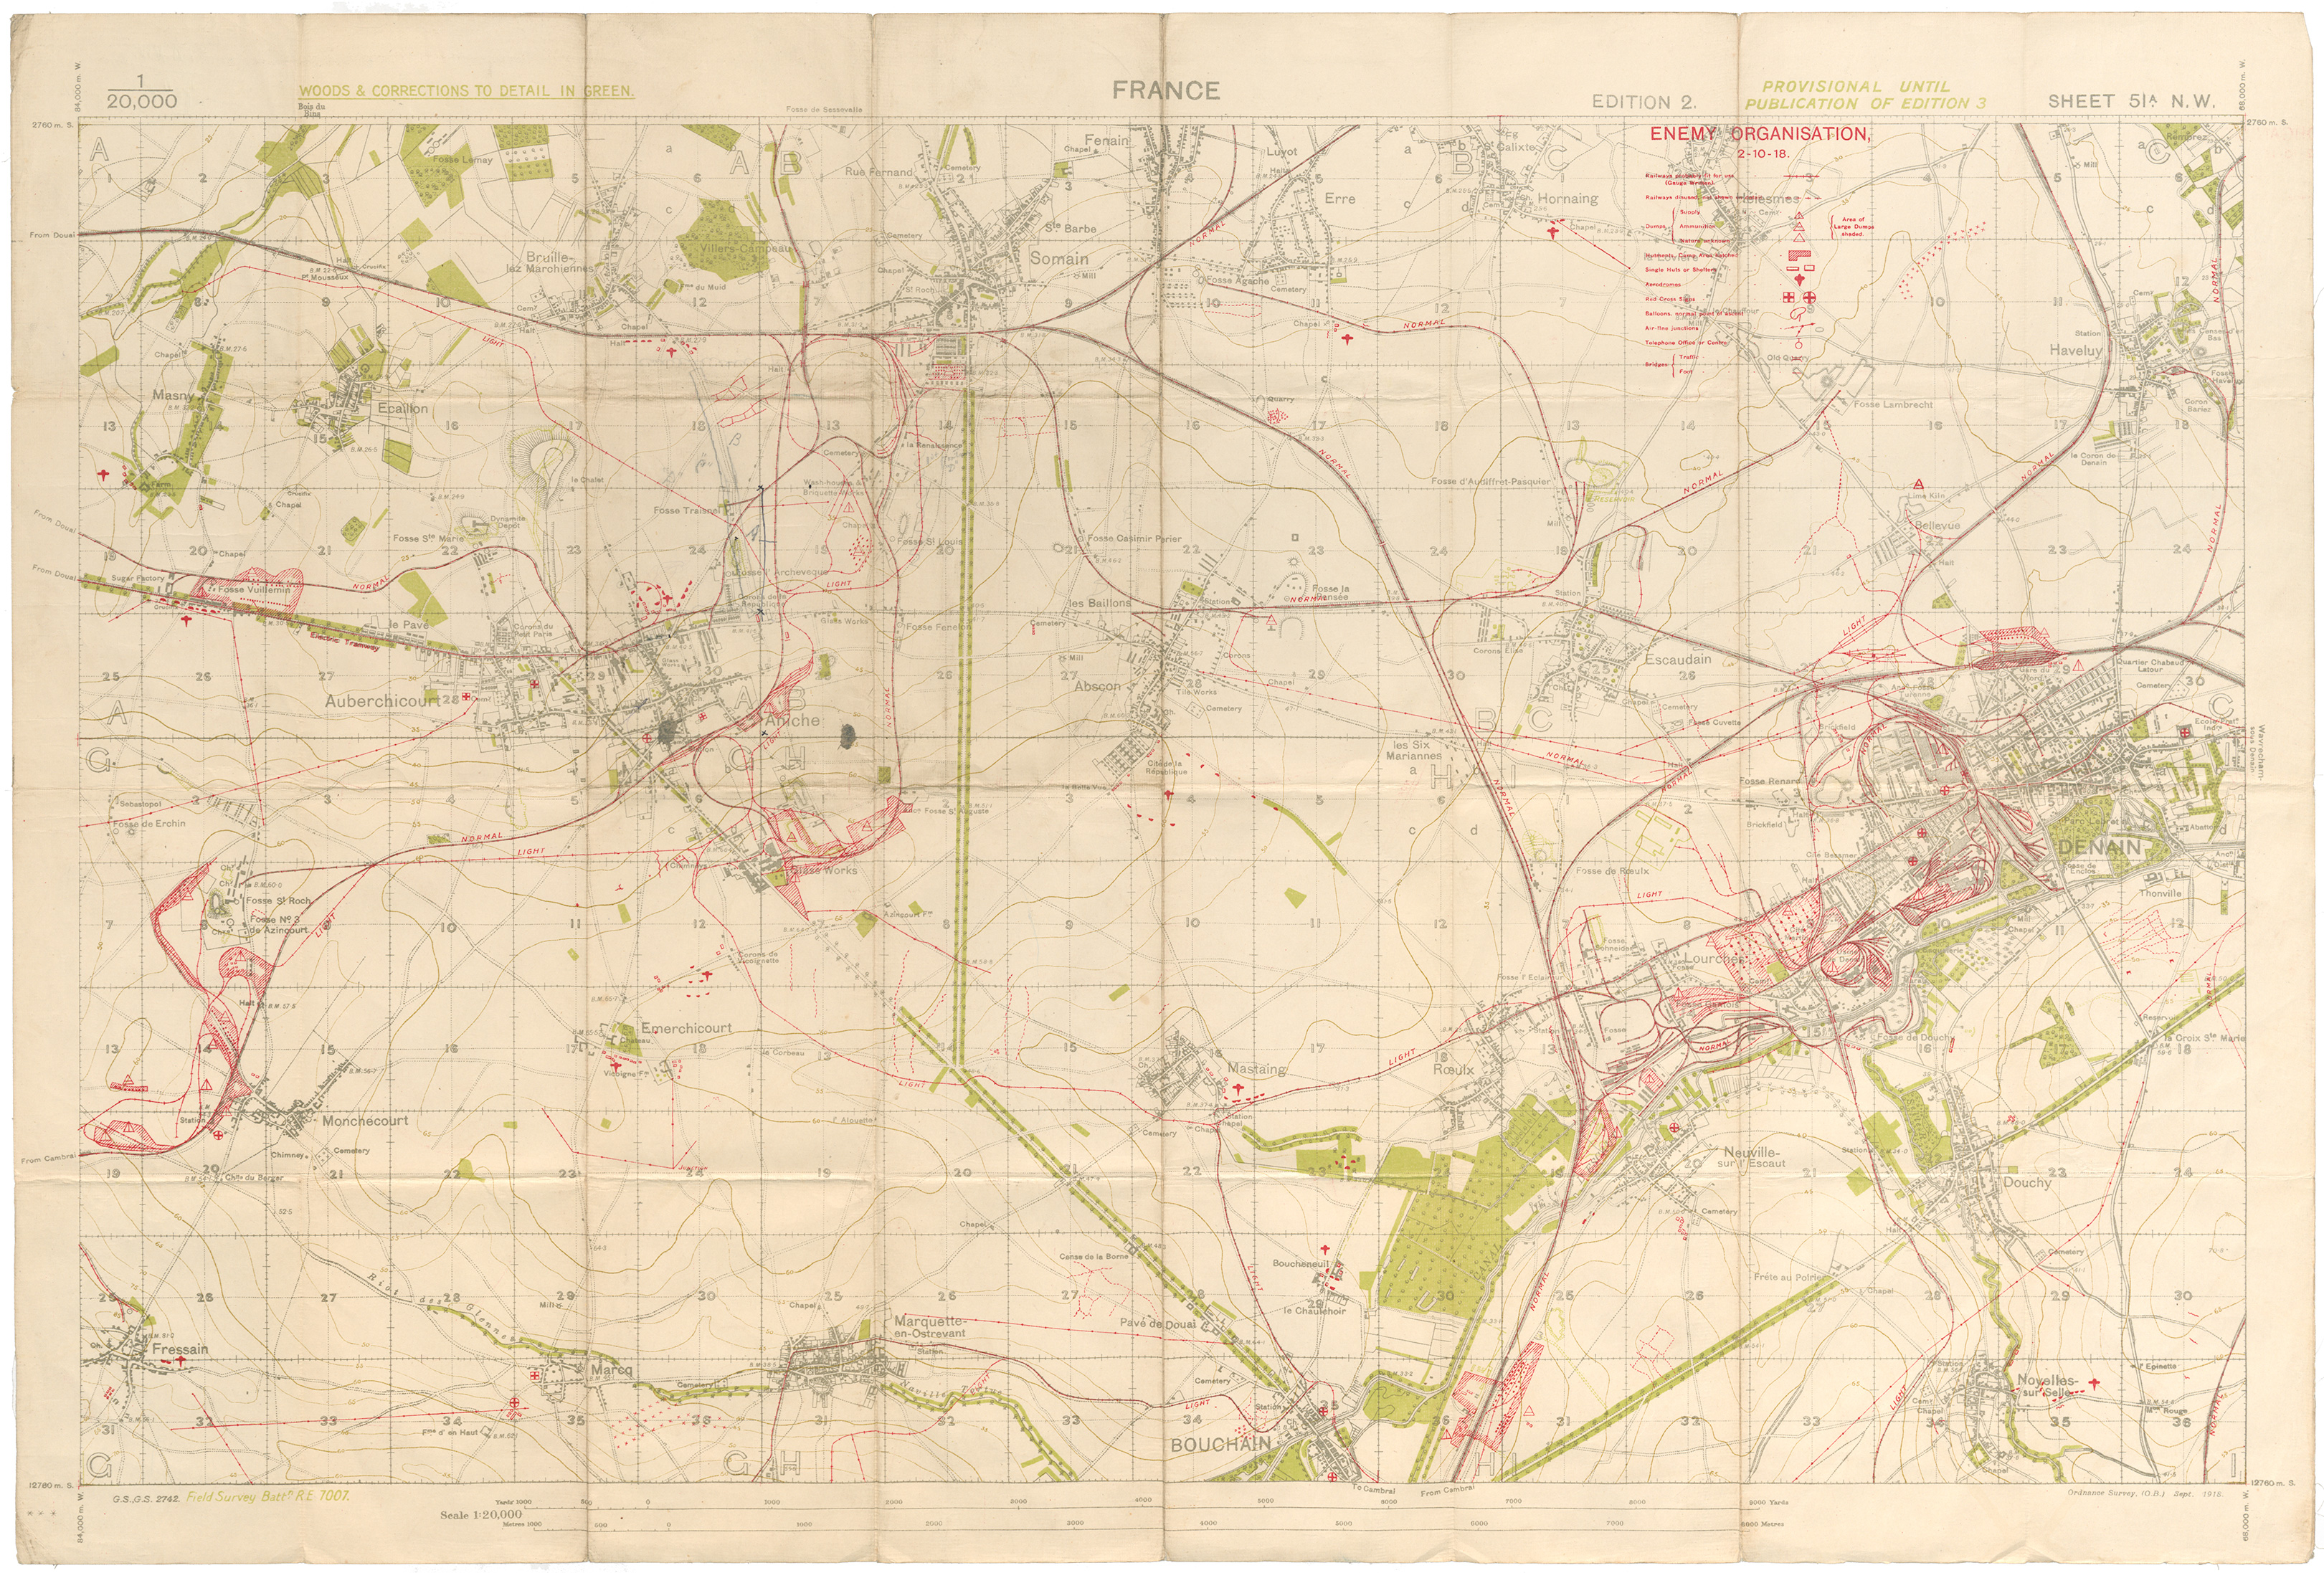 Map of France Sheet 51 A N.W.